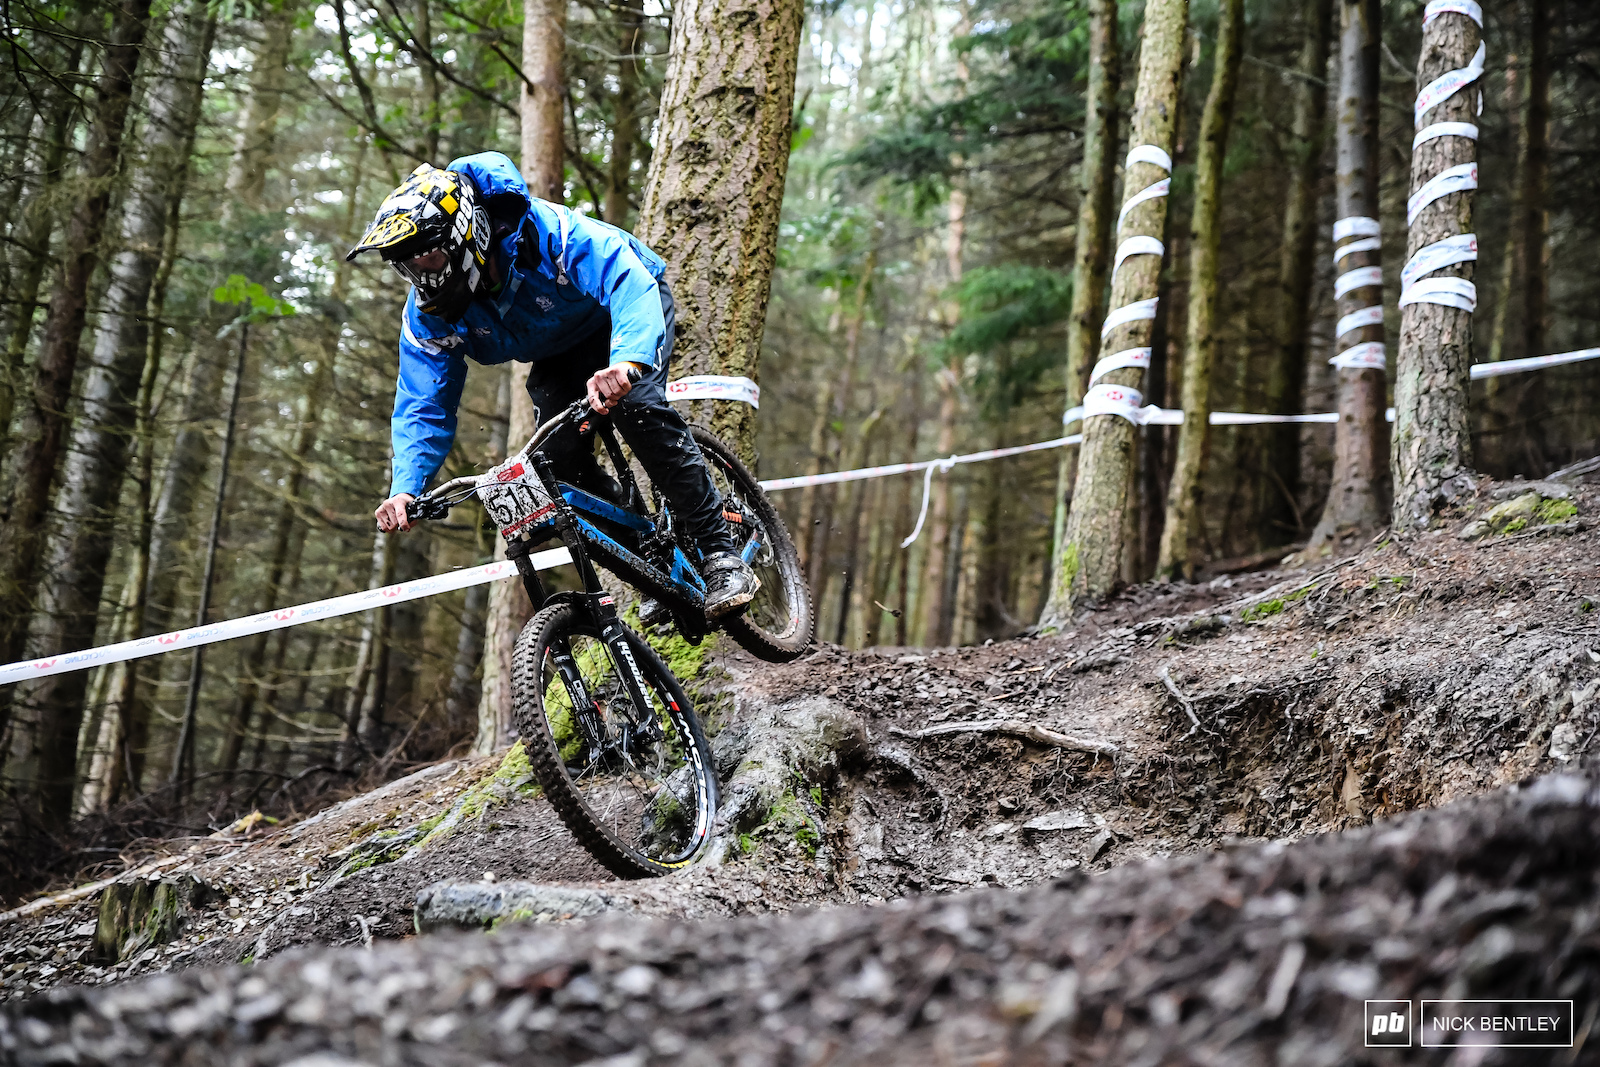 Ben Ballantyne taking the inside line on one of the more open sections of the track.